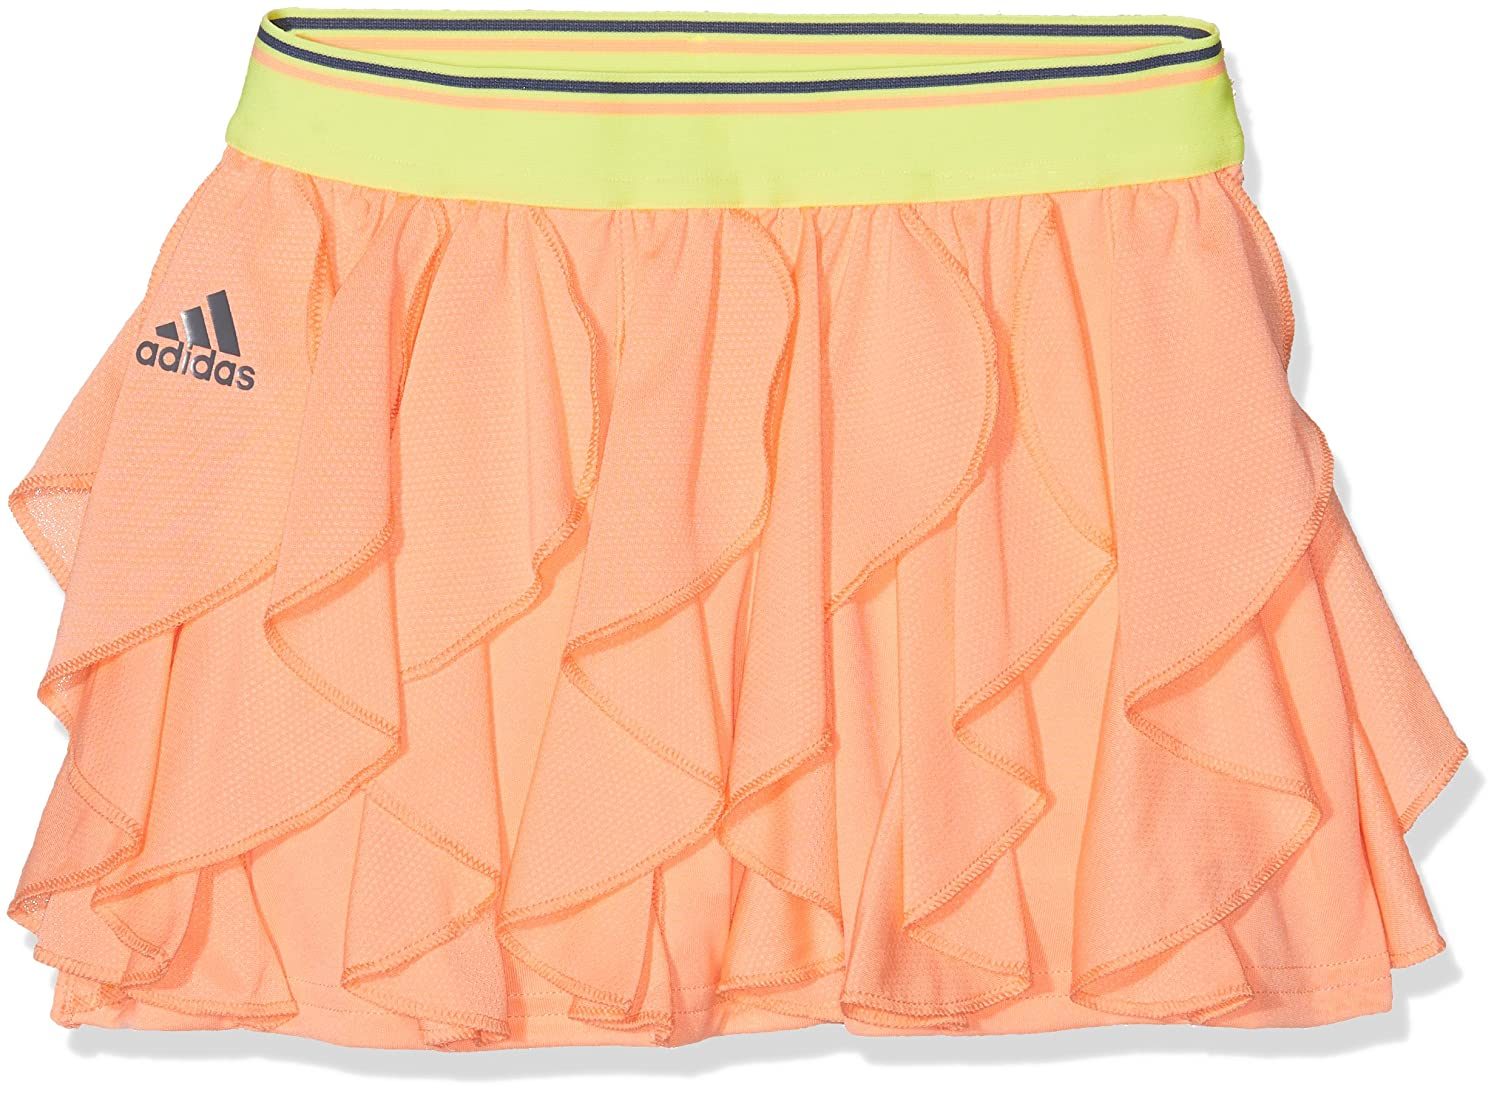 adidas Girls Frilly Skirt, Girls, Frilly Size 13 - 14 Years CW1639